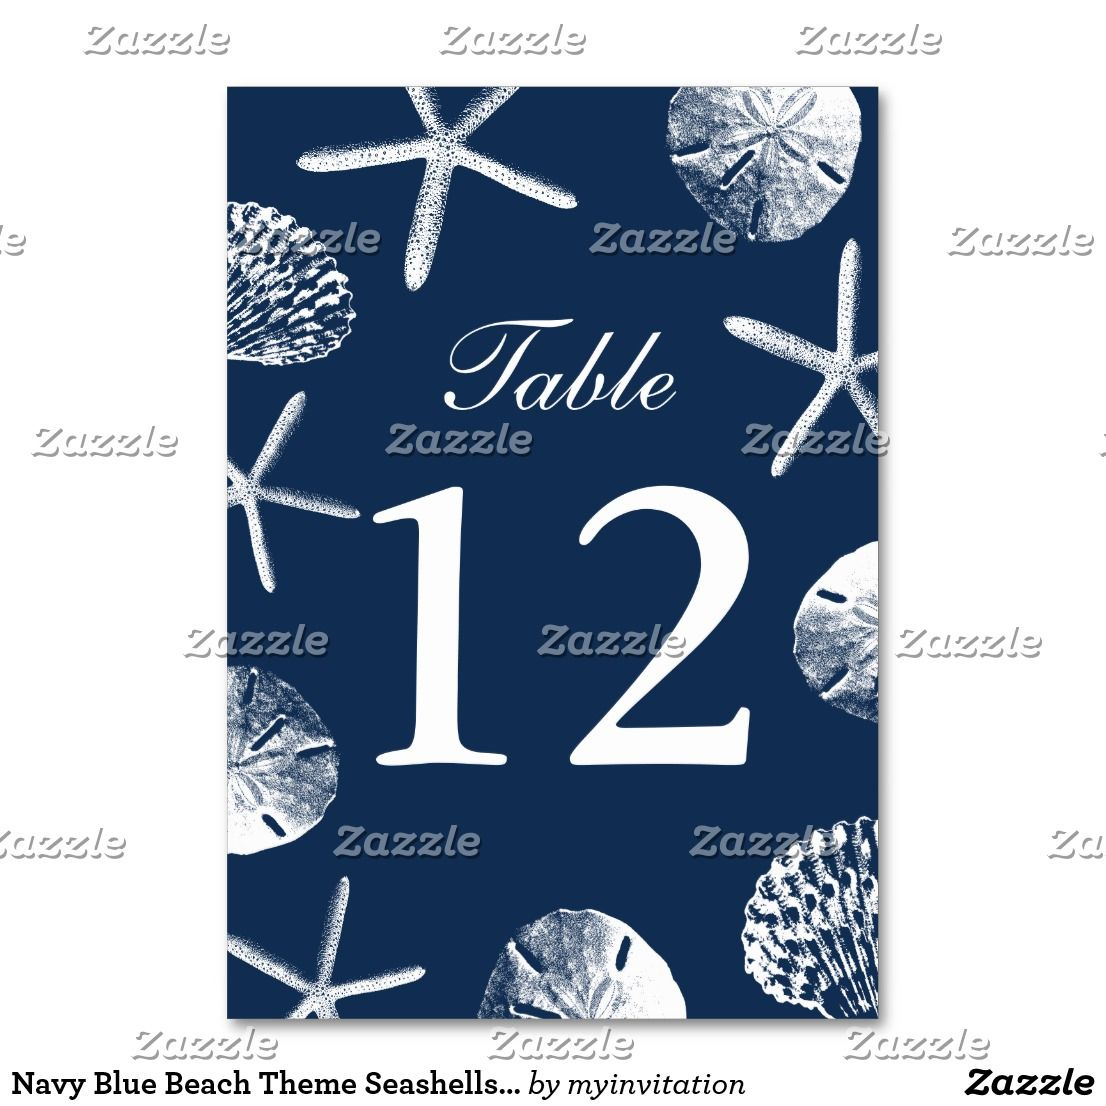 Navy Blue Beach Theme Seashells Table Numbers Zazzle Com With